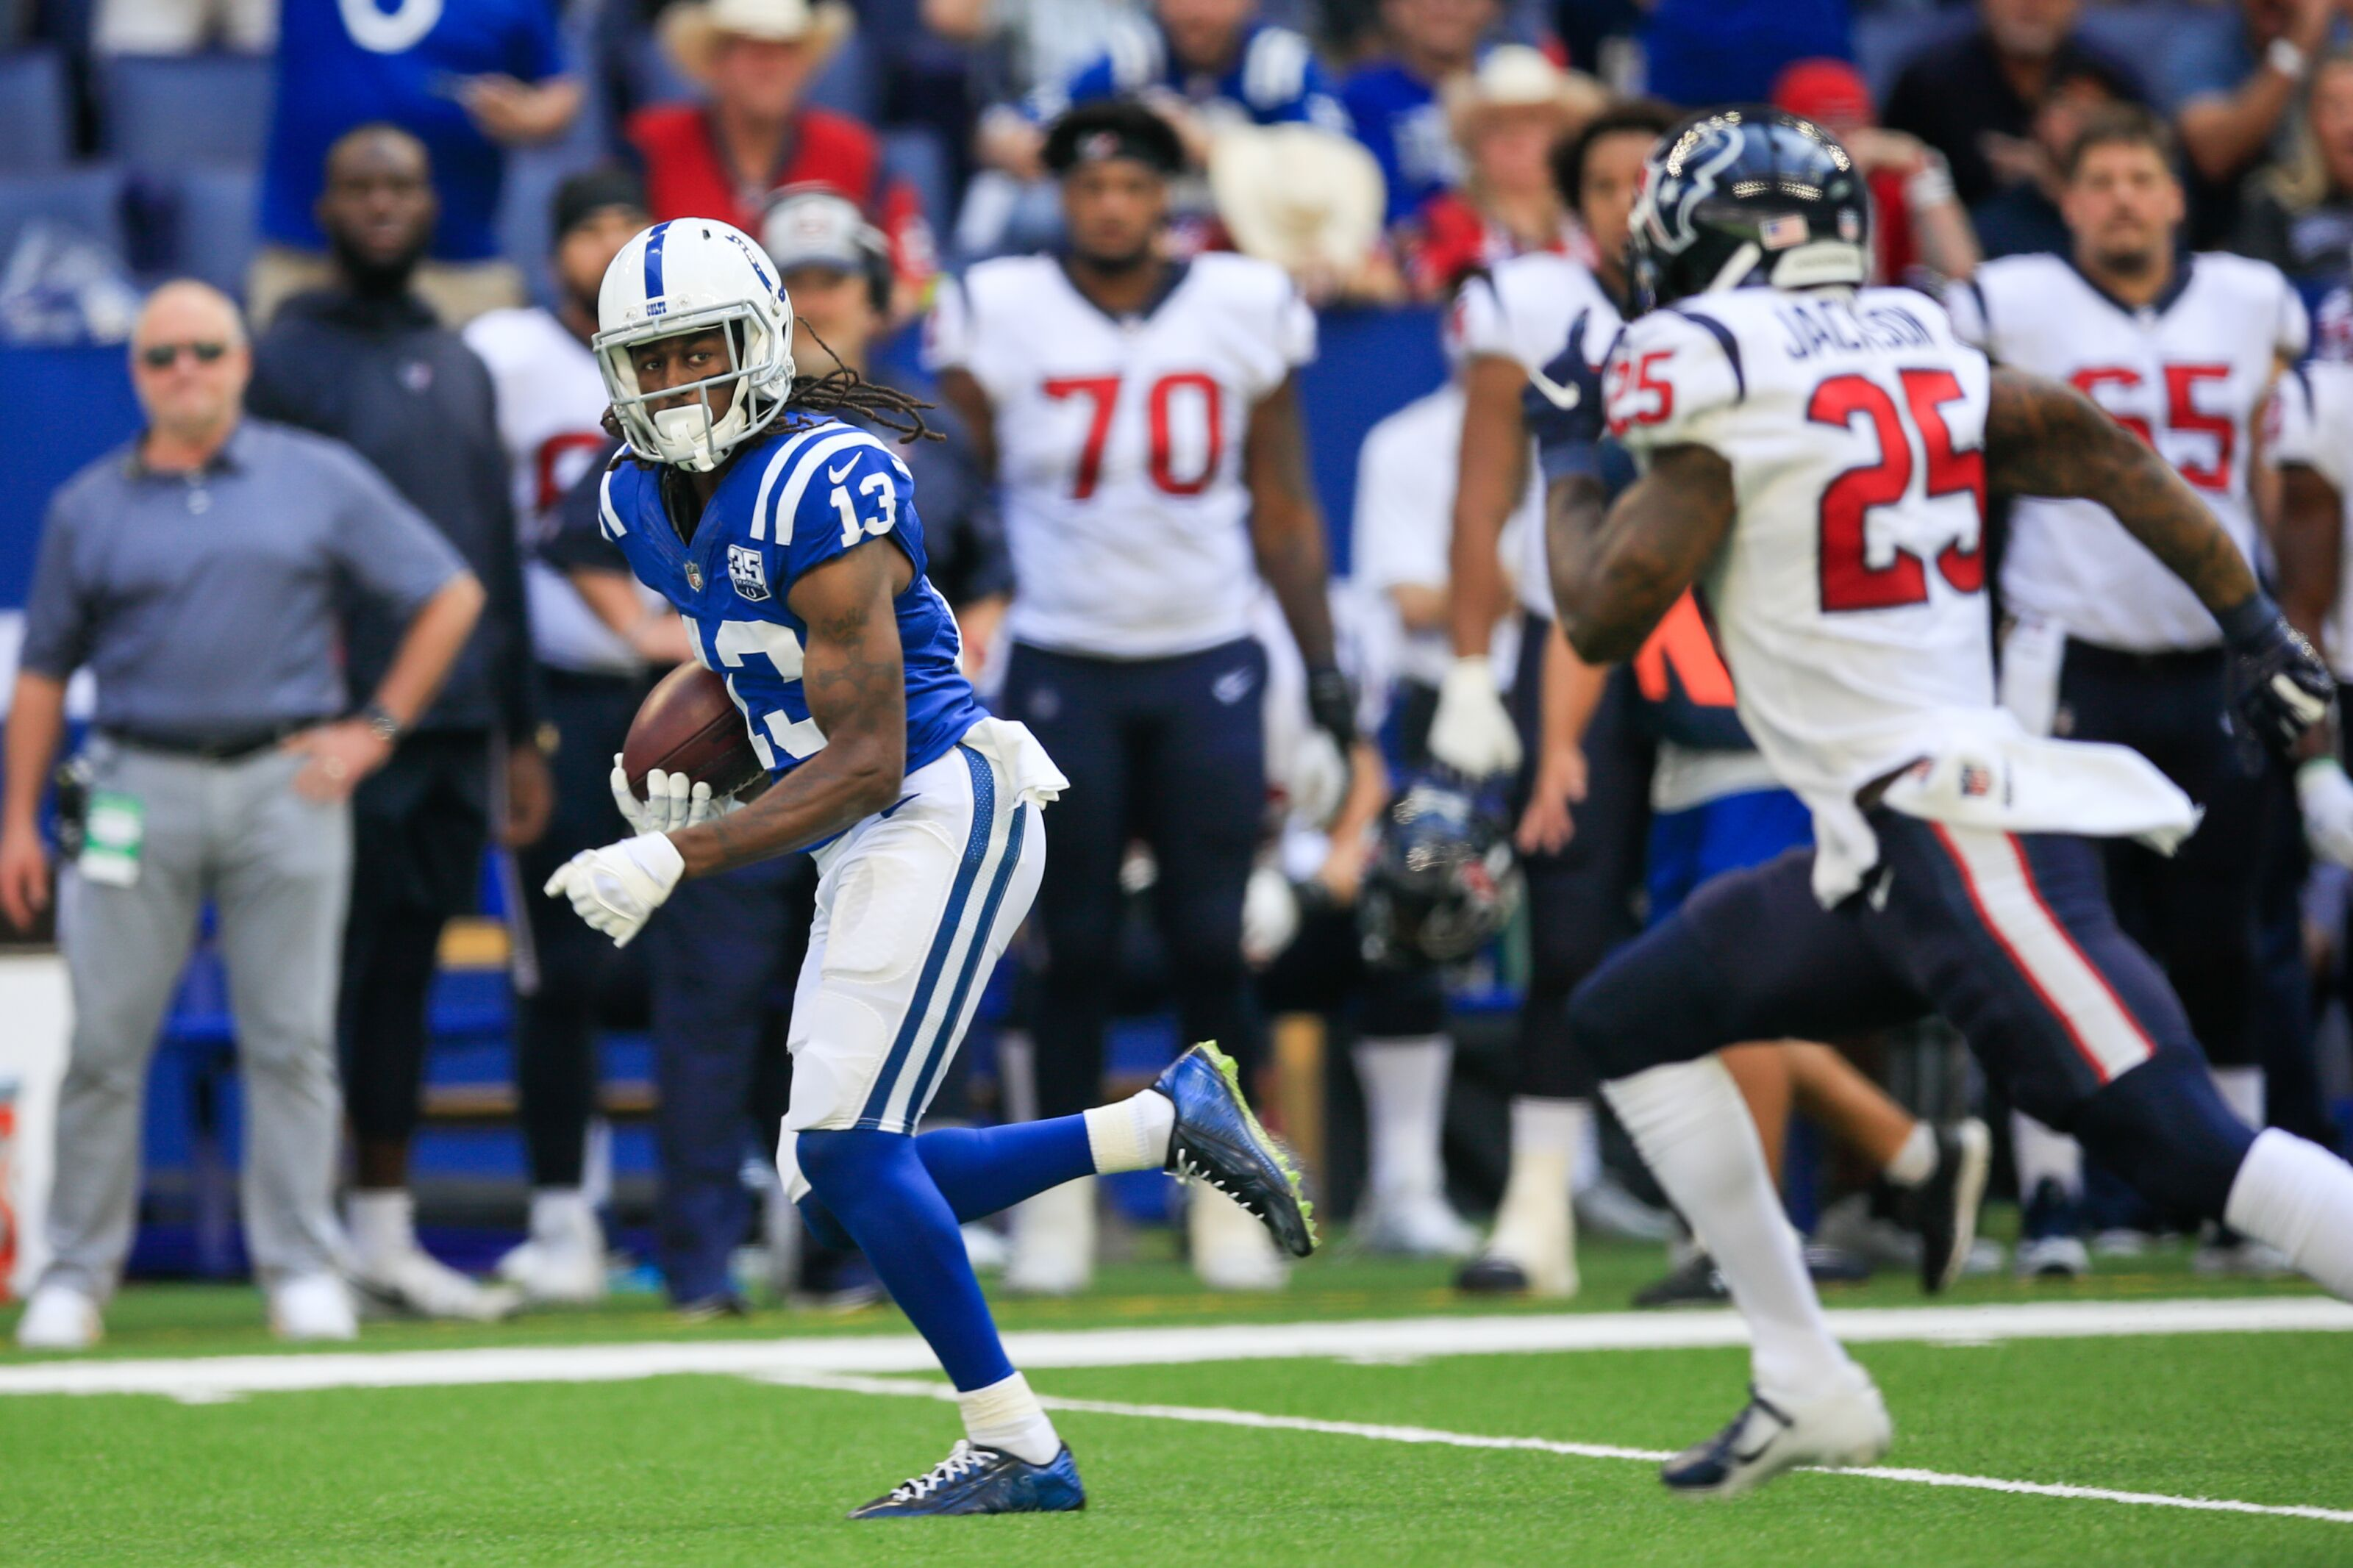 Colts injury update: Report looking better